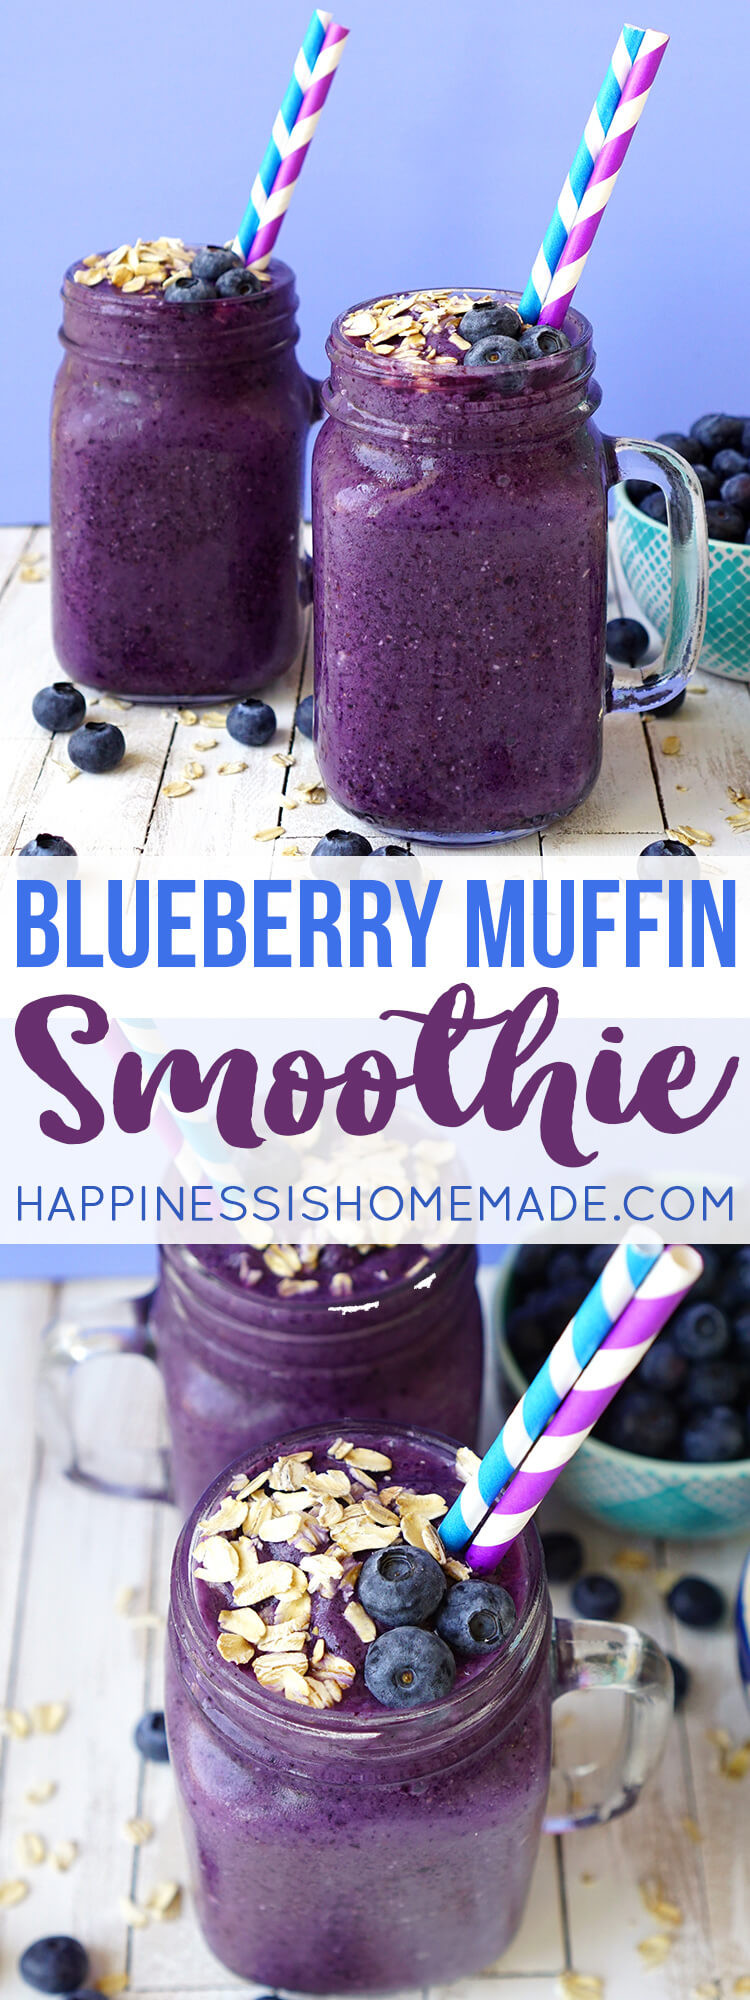 Healthy And Delicious Smoothies  Healthy Blueberry Muffin Smoothie Recipe Happiness is